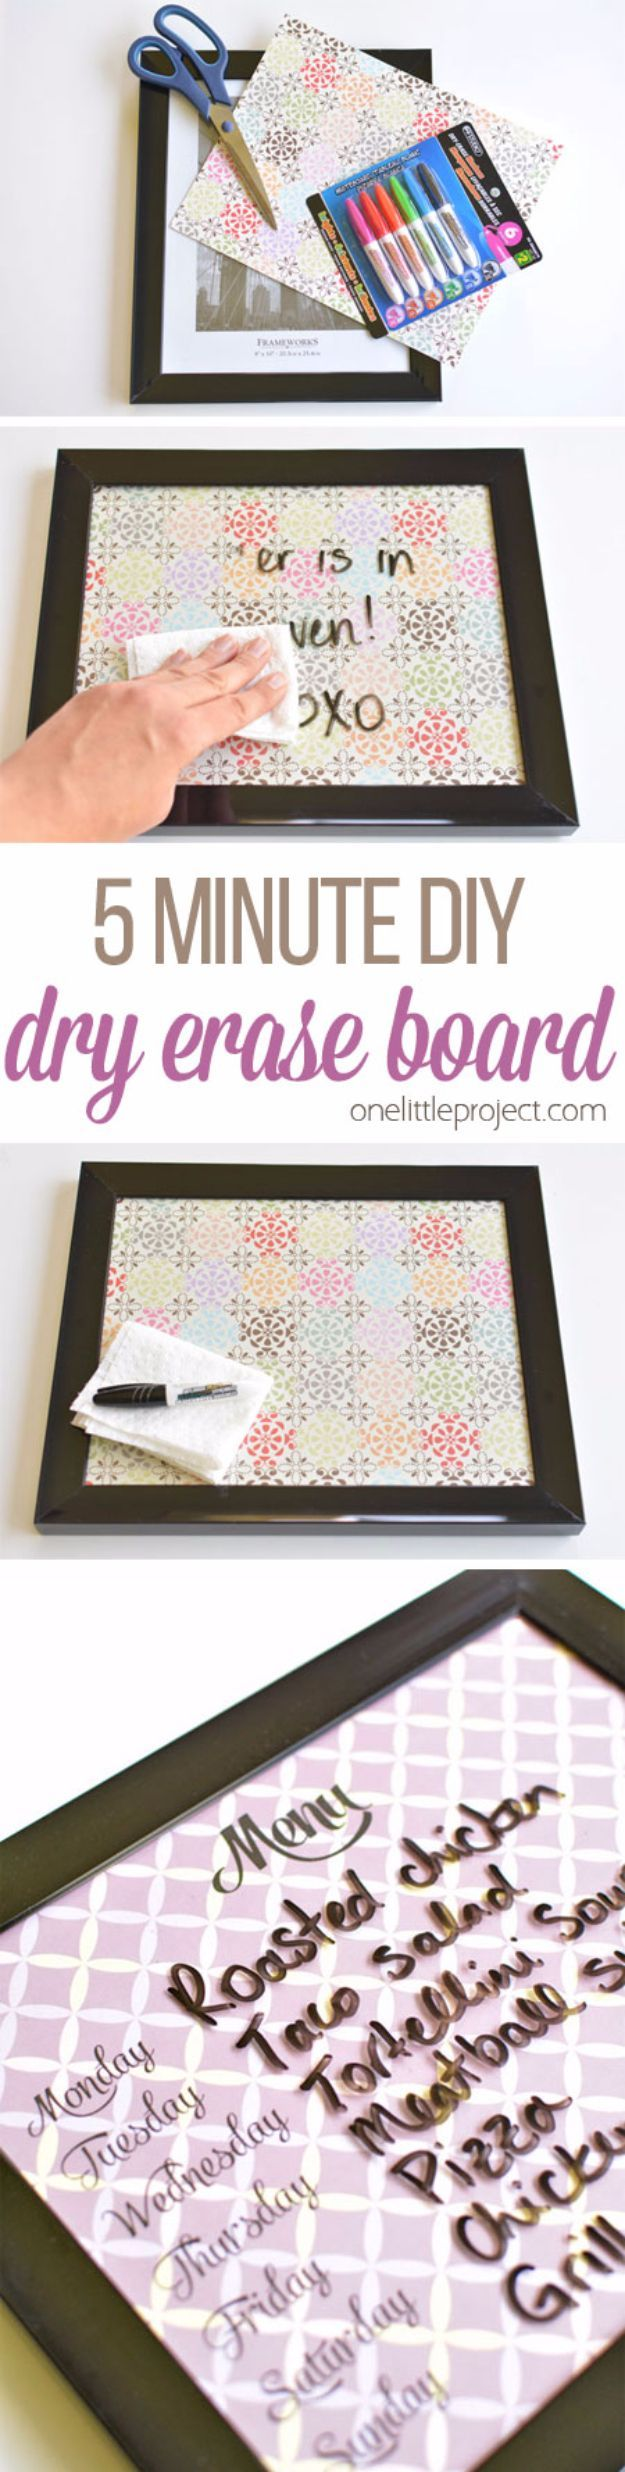 41 Easy Diy Projects And Craft Ideas Diy Whiteboard Diy Dry